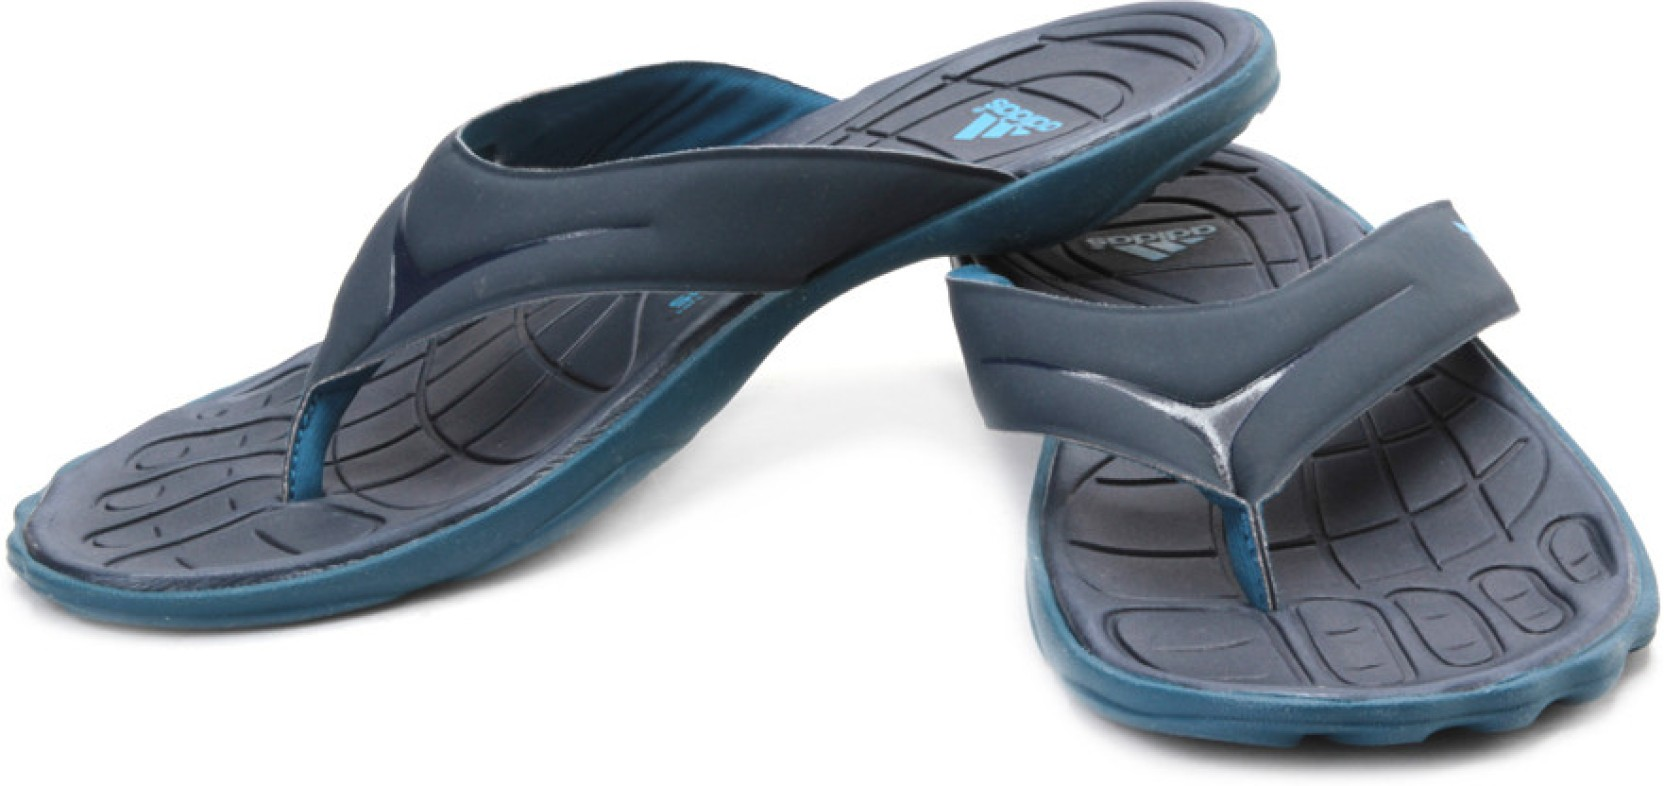 huge discount 2d78b 02c75 ADIDAS Adipure Thong Sc M Slippers. Share